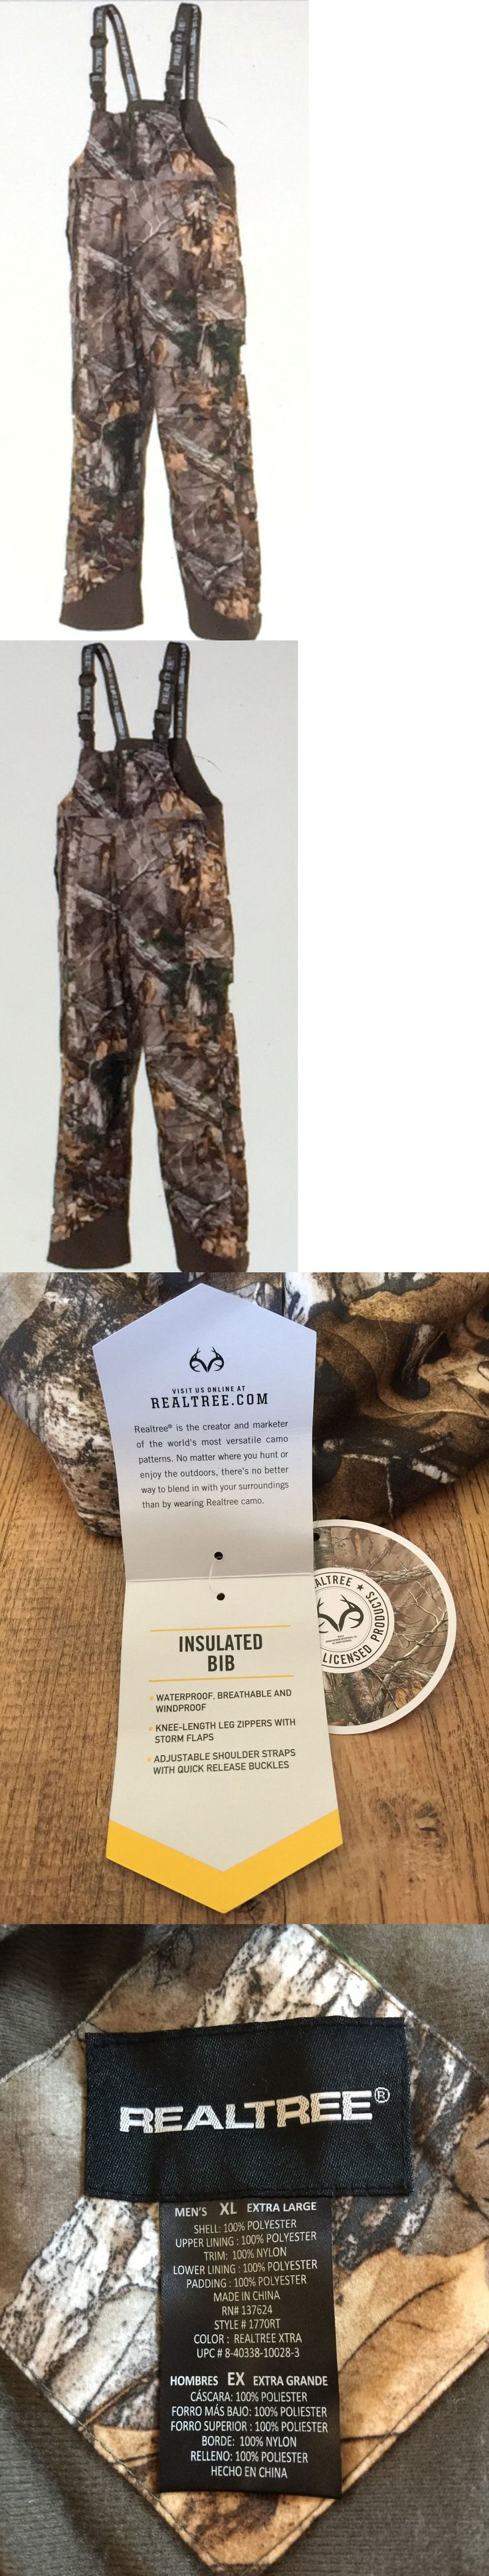 Pants and Bibs 177873: Realtree Mens Xl Insulated Hunting Bib Camo Gear Pants Waterproof Overalls Nwt BUY IT NOW ONLY: $83.85